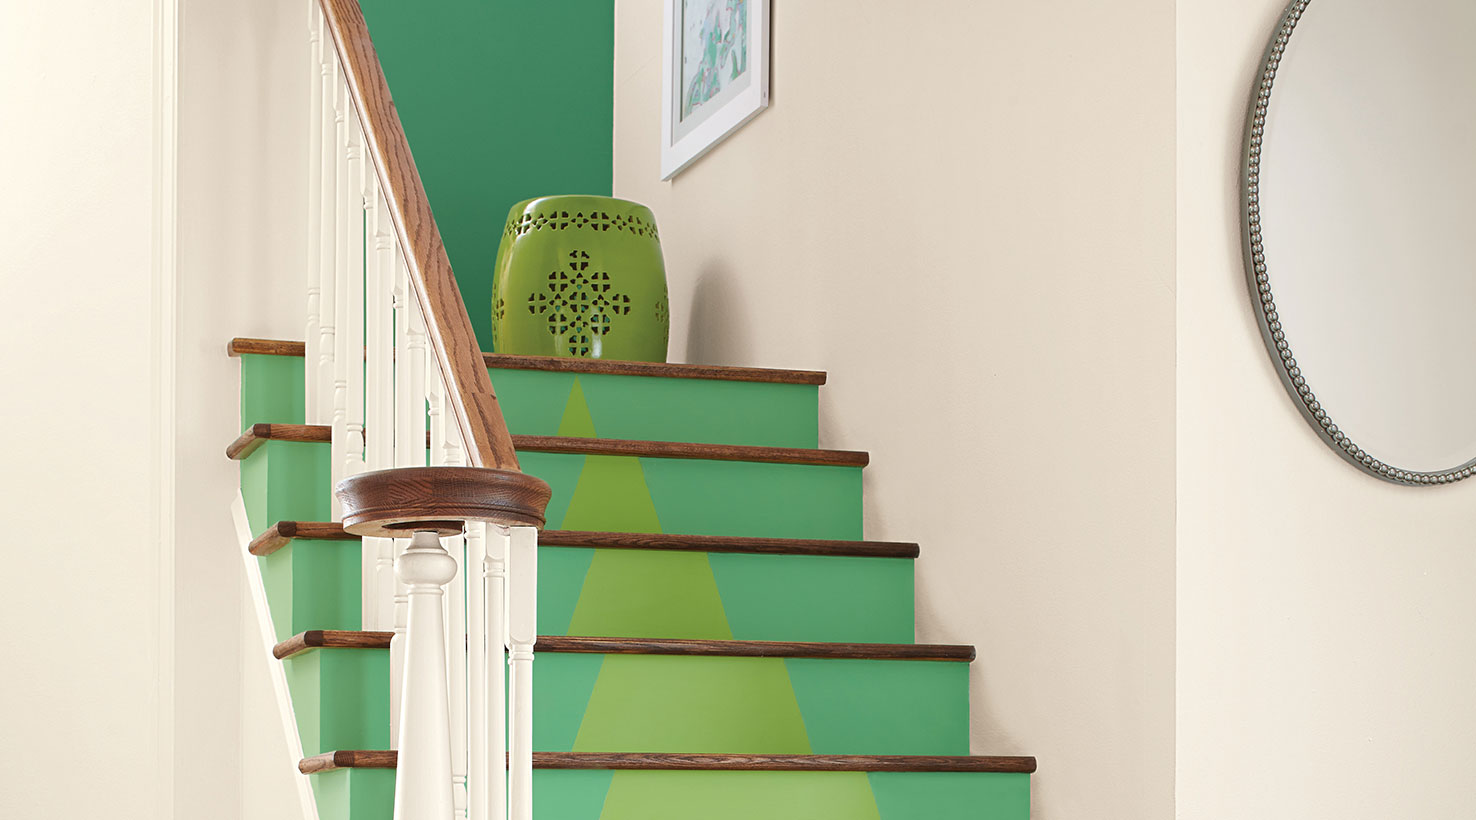 Phantasy Stairway Greens Stairway Paint Color Inspiration Gallery Sherwin Williams Emerald Paint Cabinets Sherwin Williams Emerald Game houzz 01 Sherwin Williams Emerald